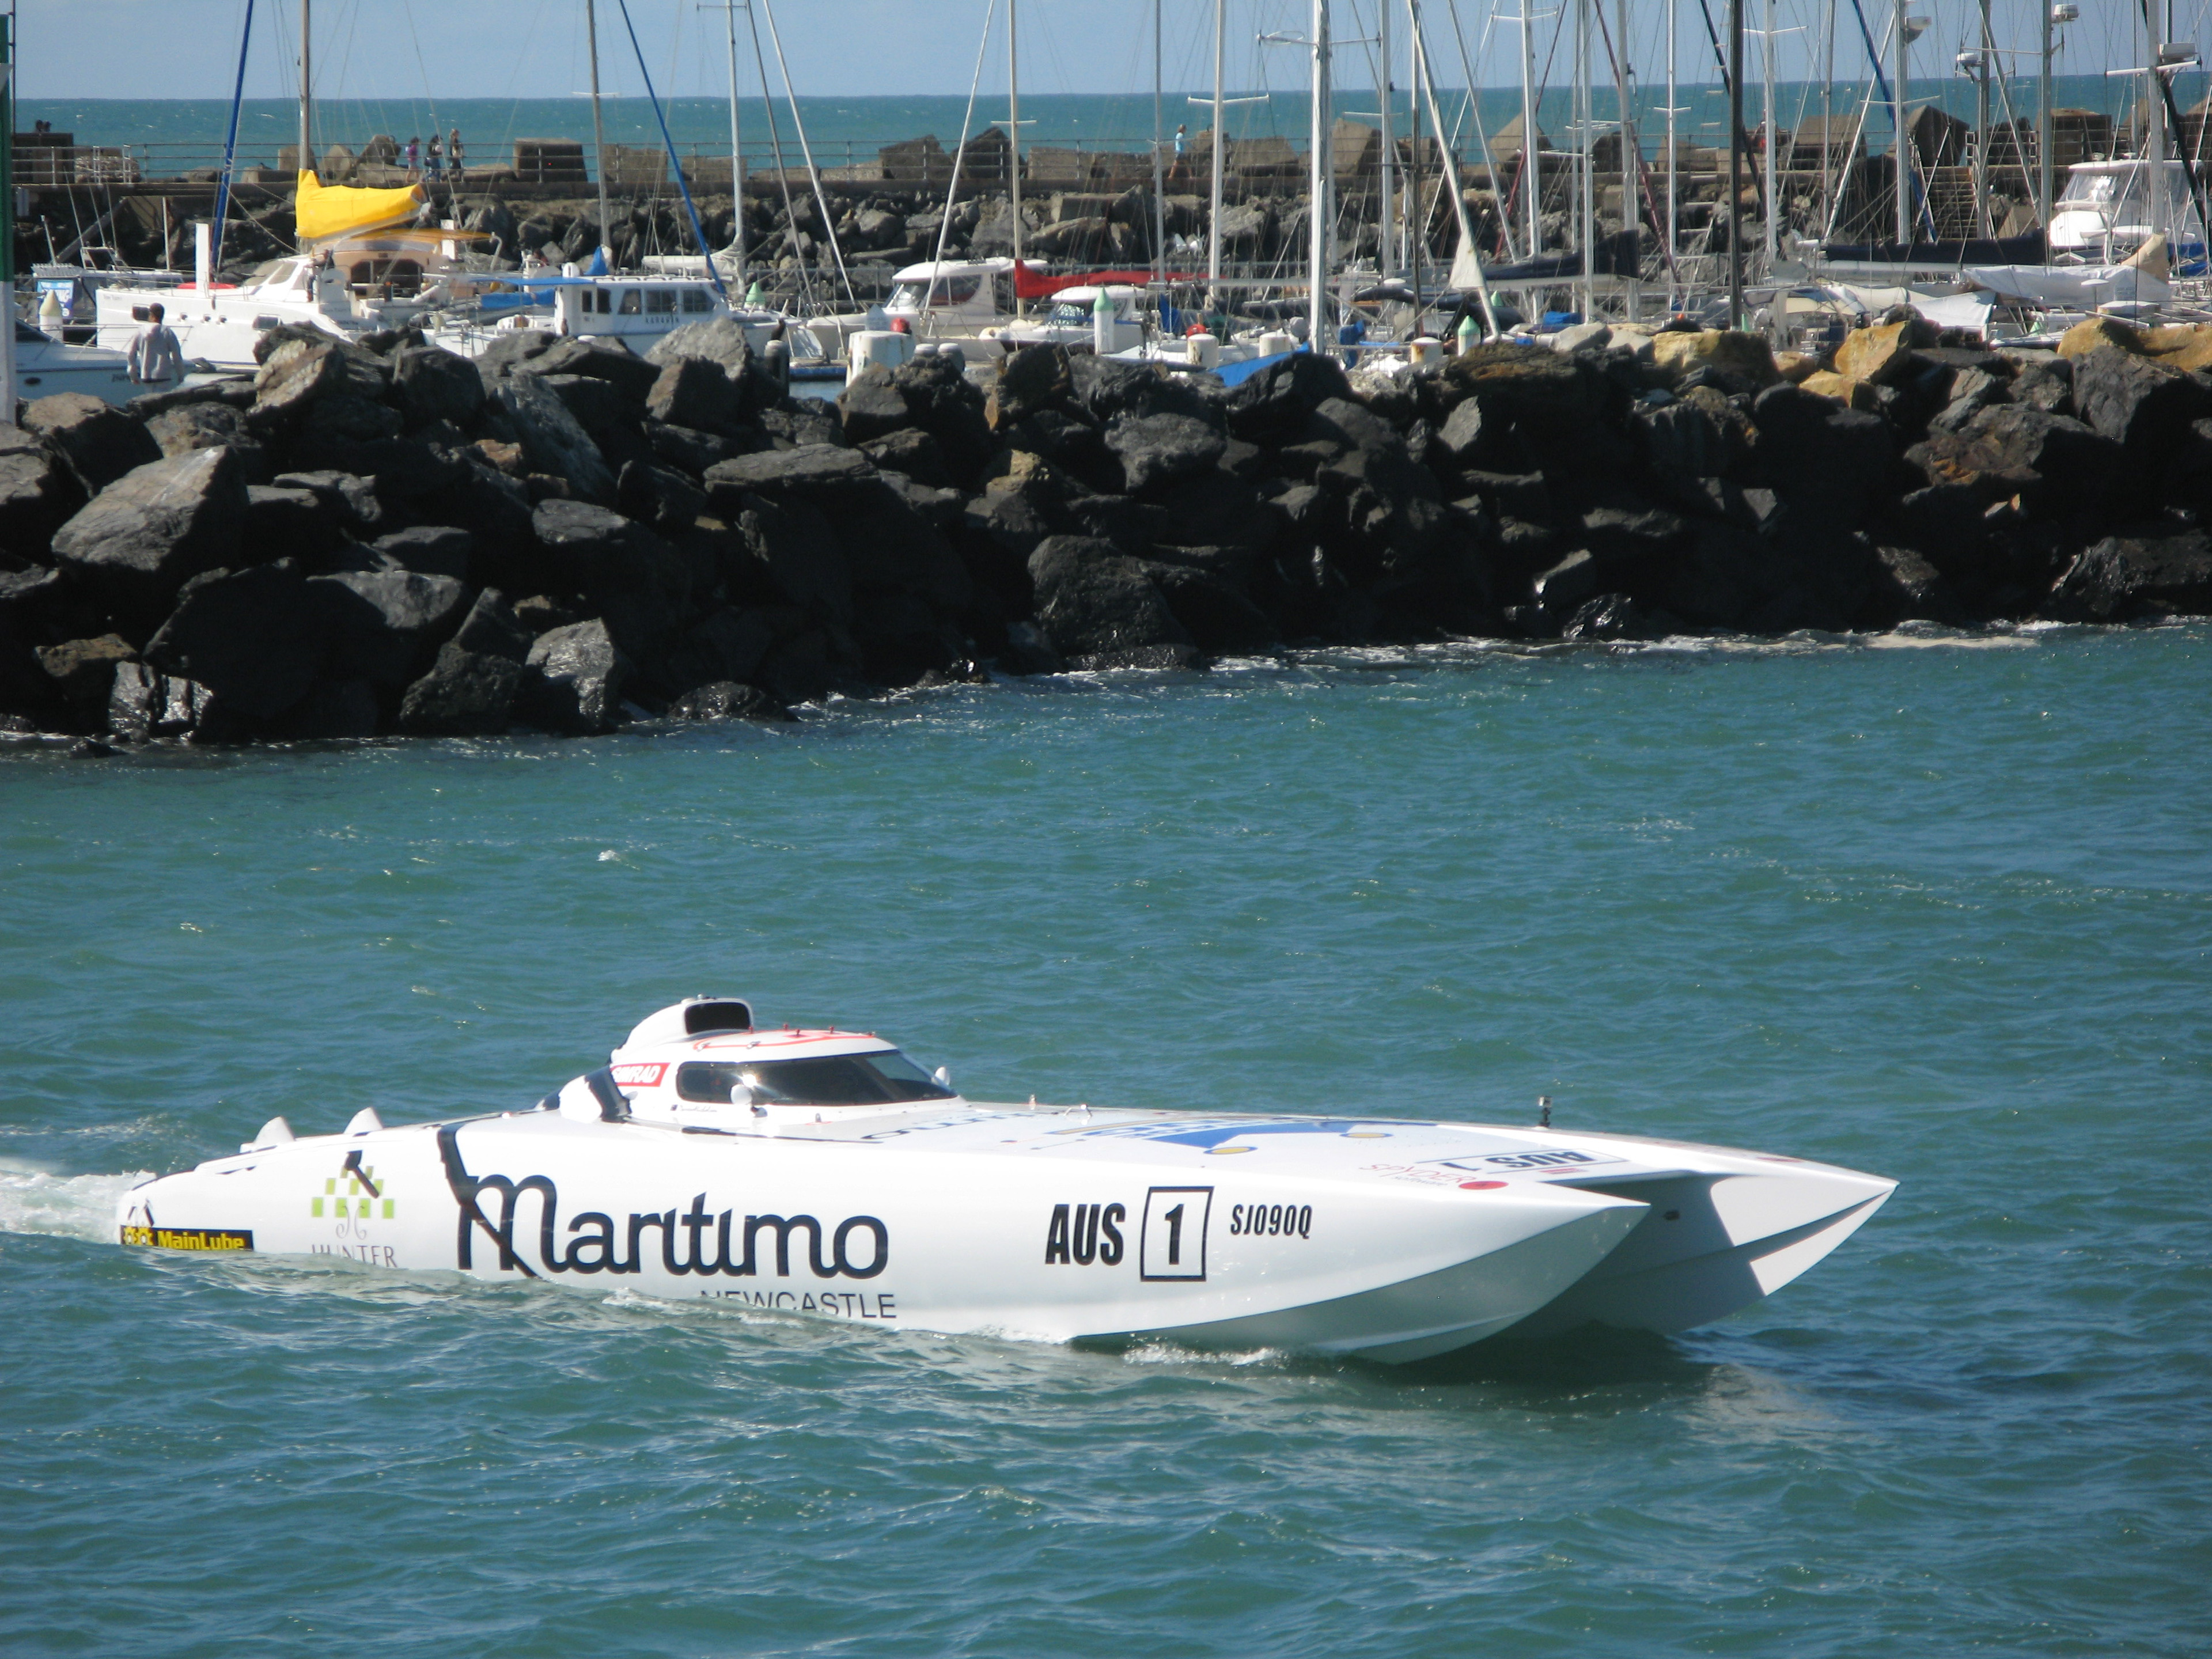 A competitor in power boat racing idling his speedboat in front of a harbor wall as he waits for his race